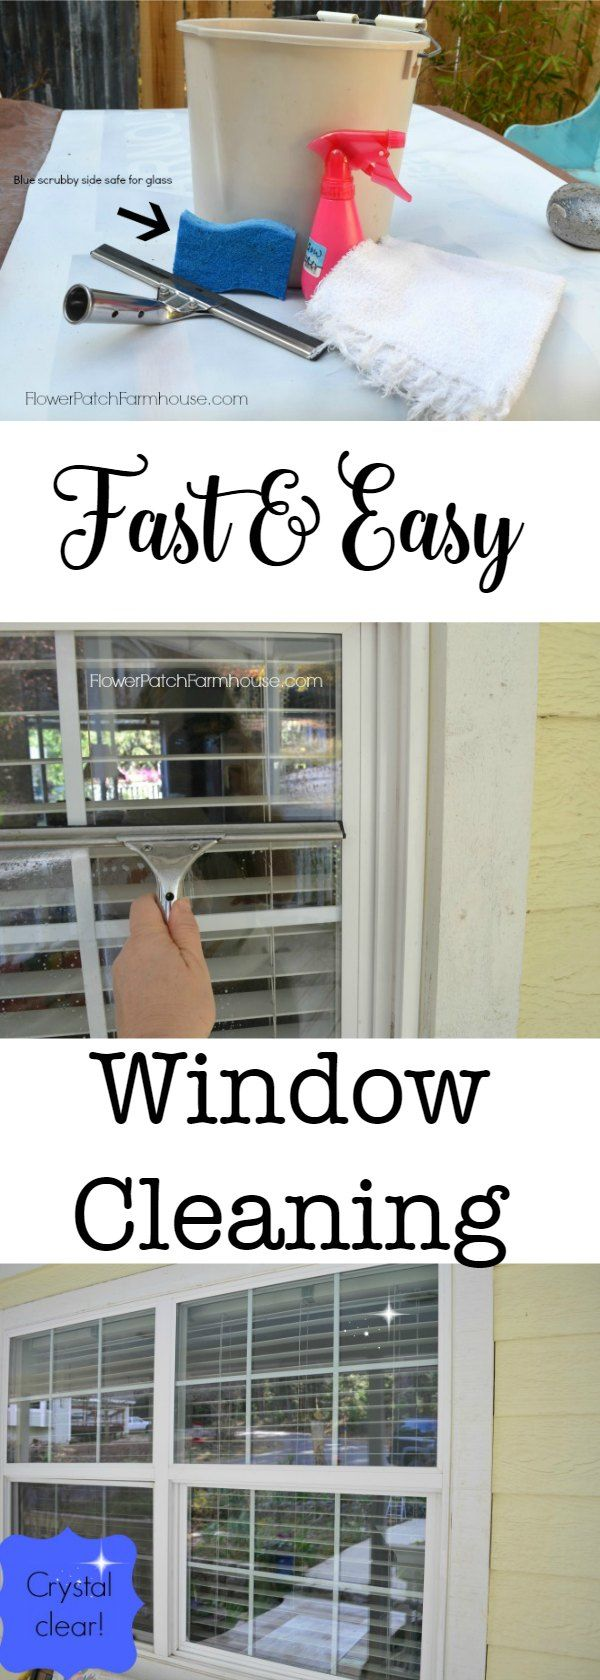 Fast and Easy window cleaning! The best method I use.